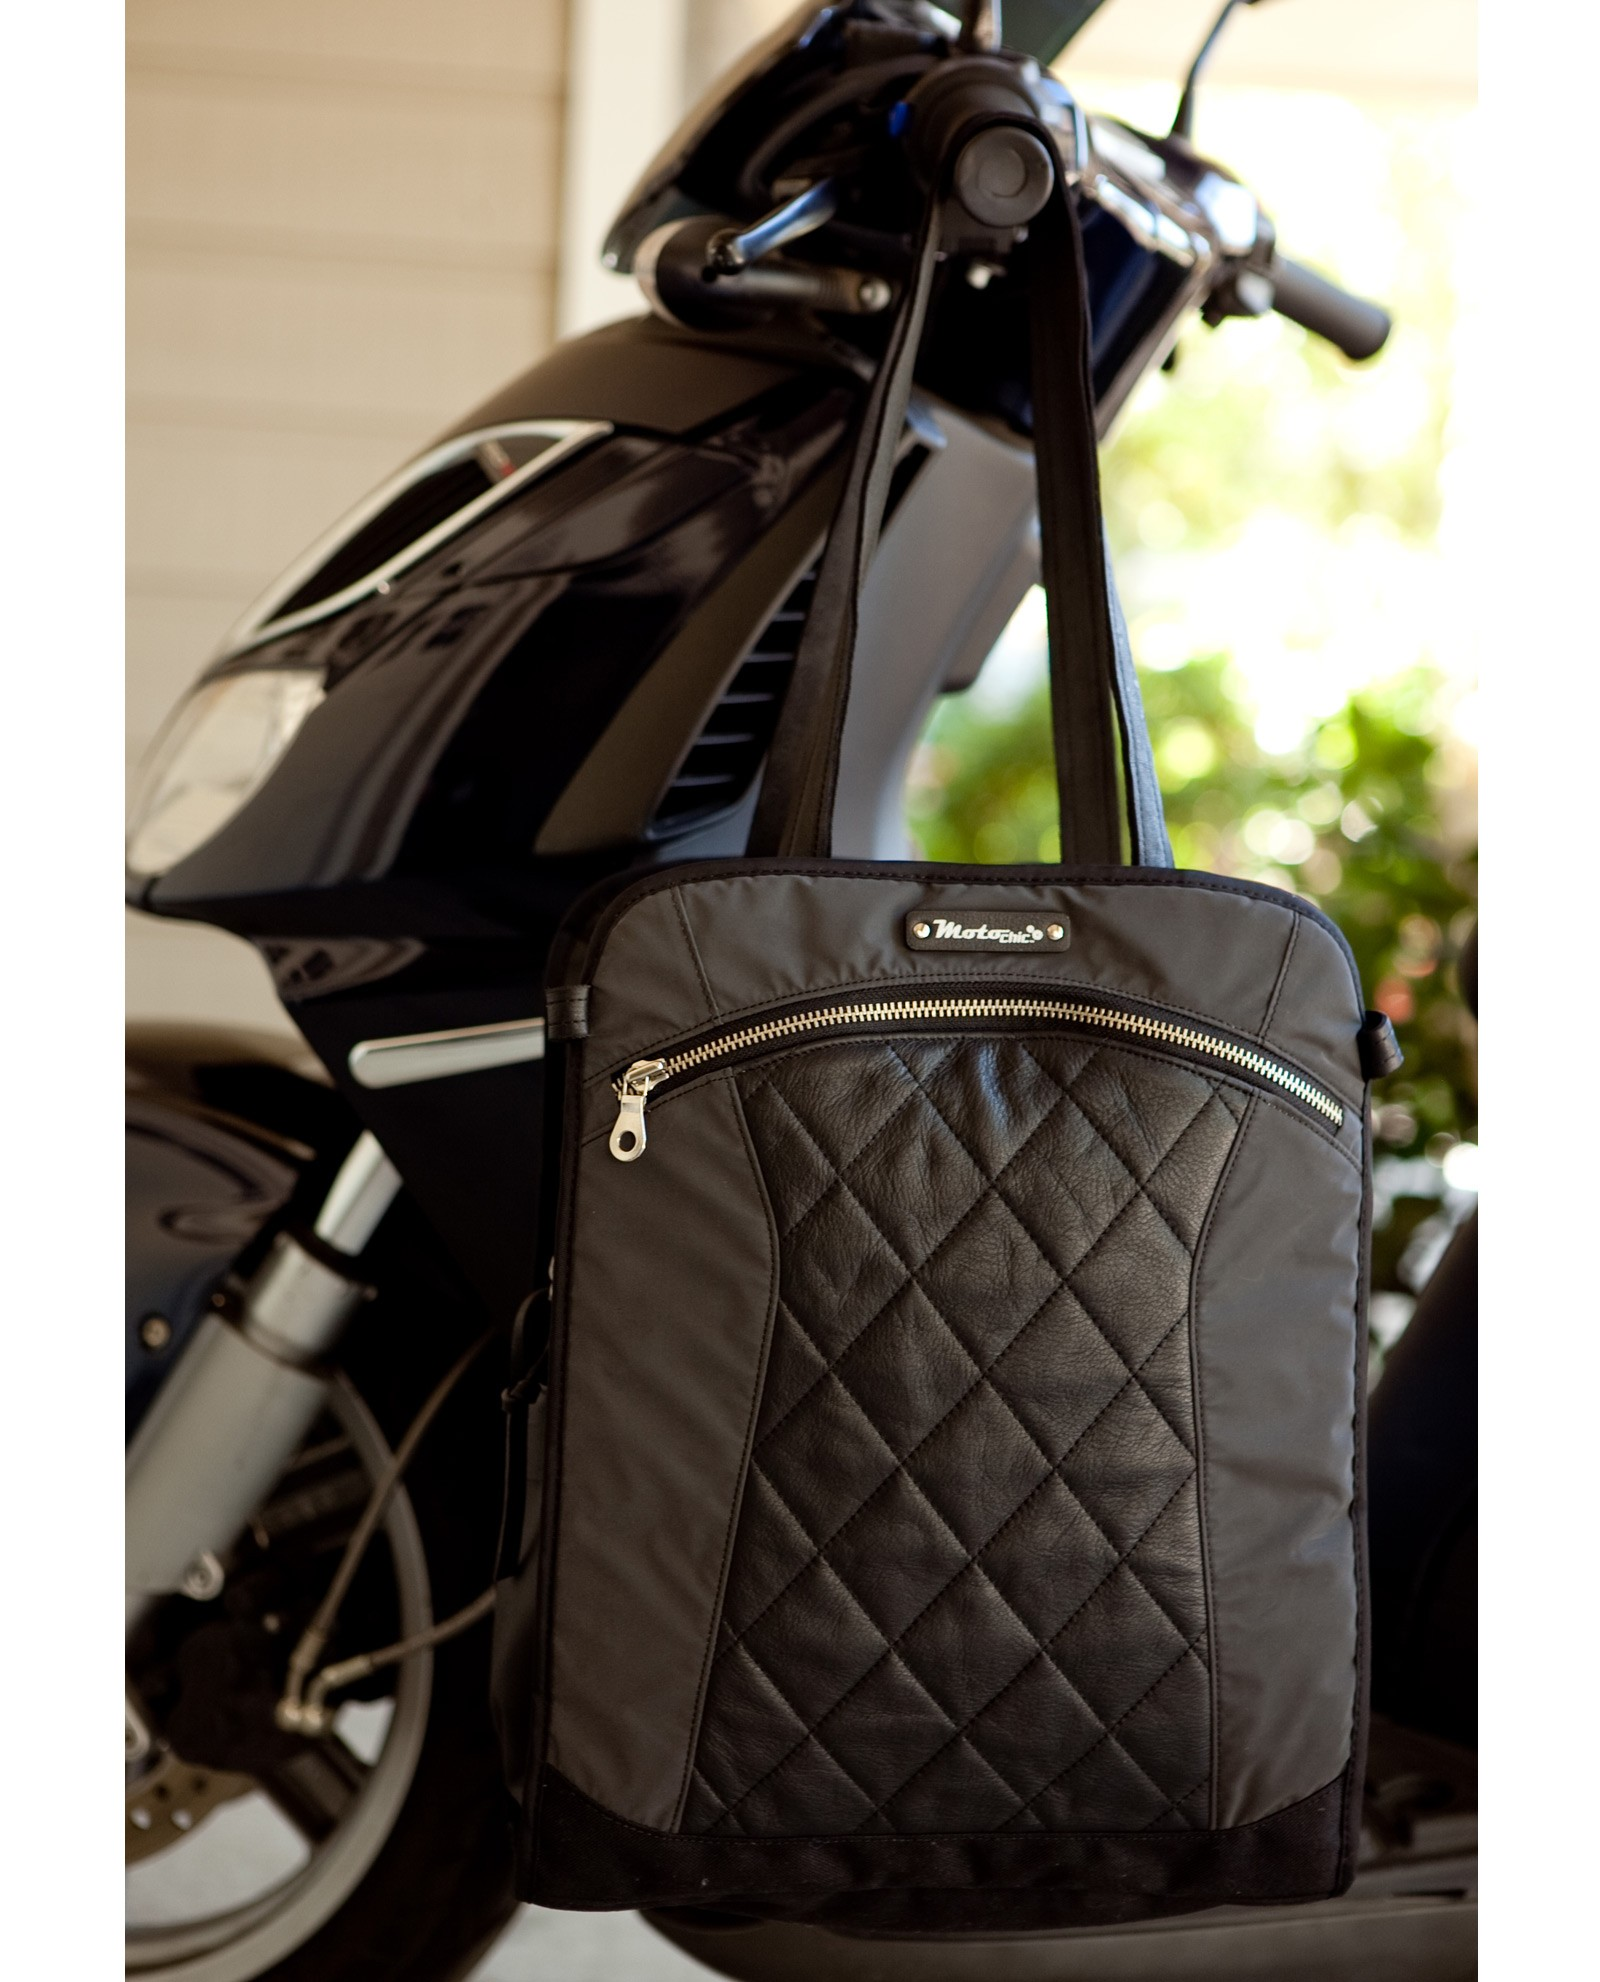 Searching for a holiday backpack